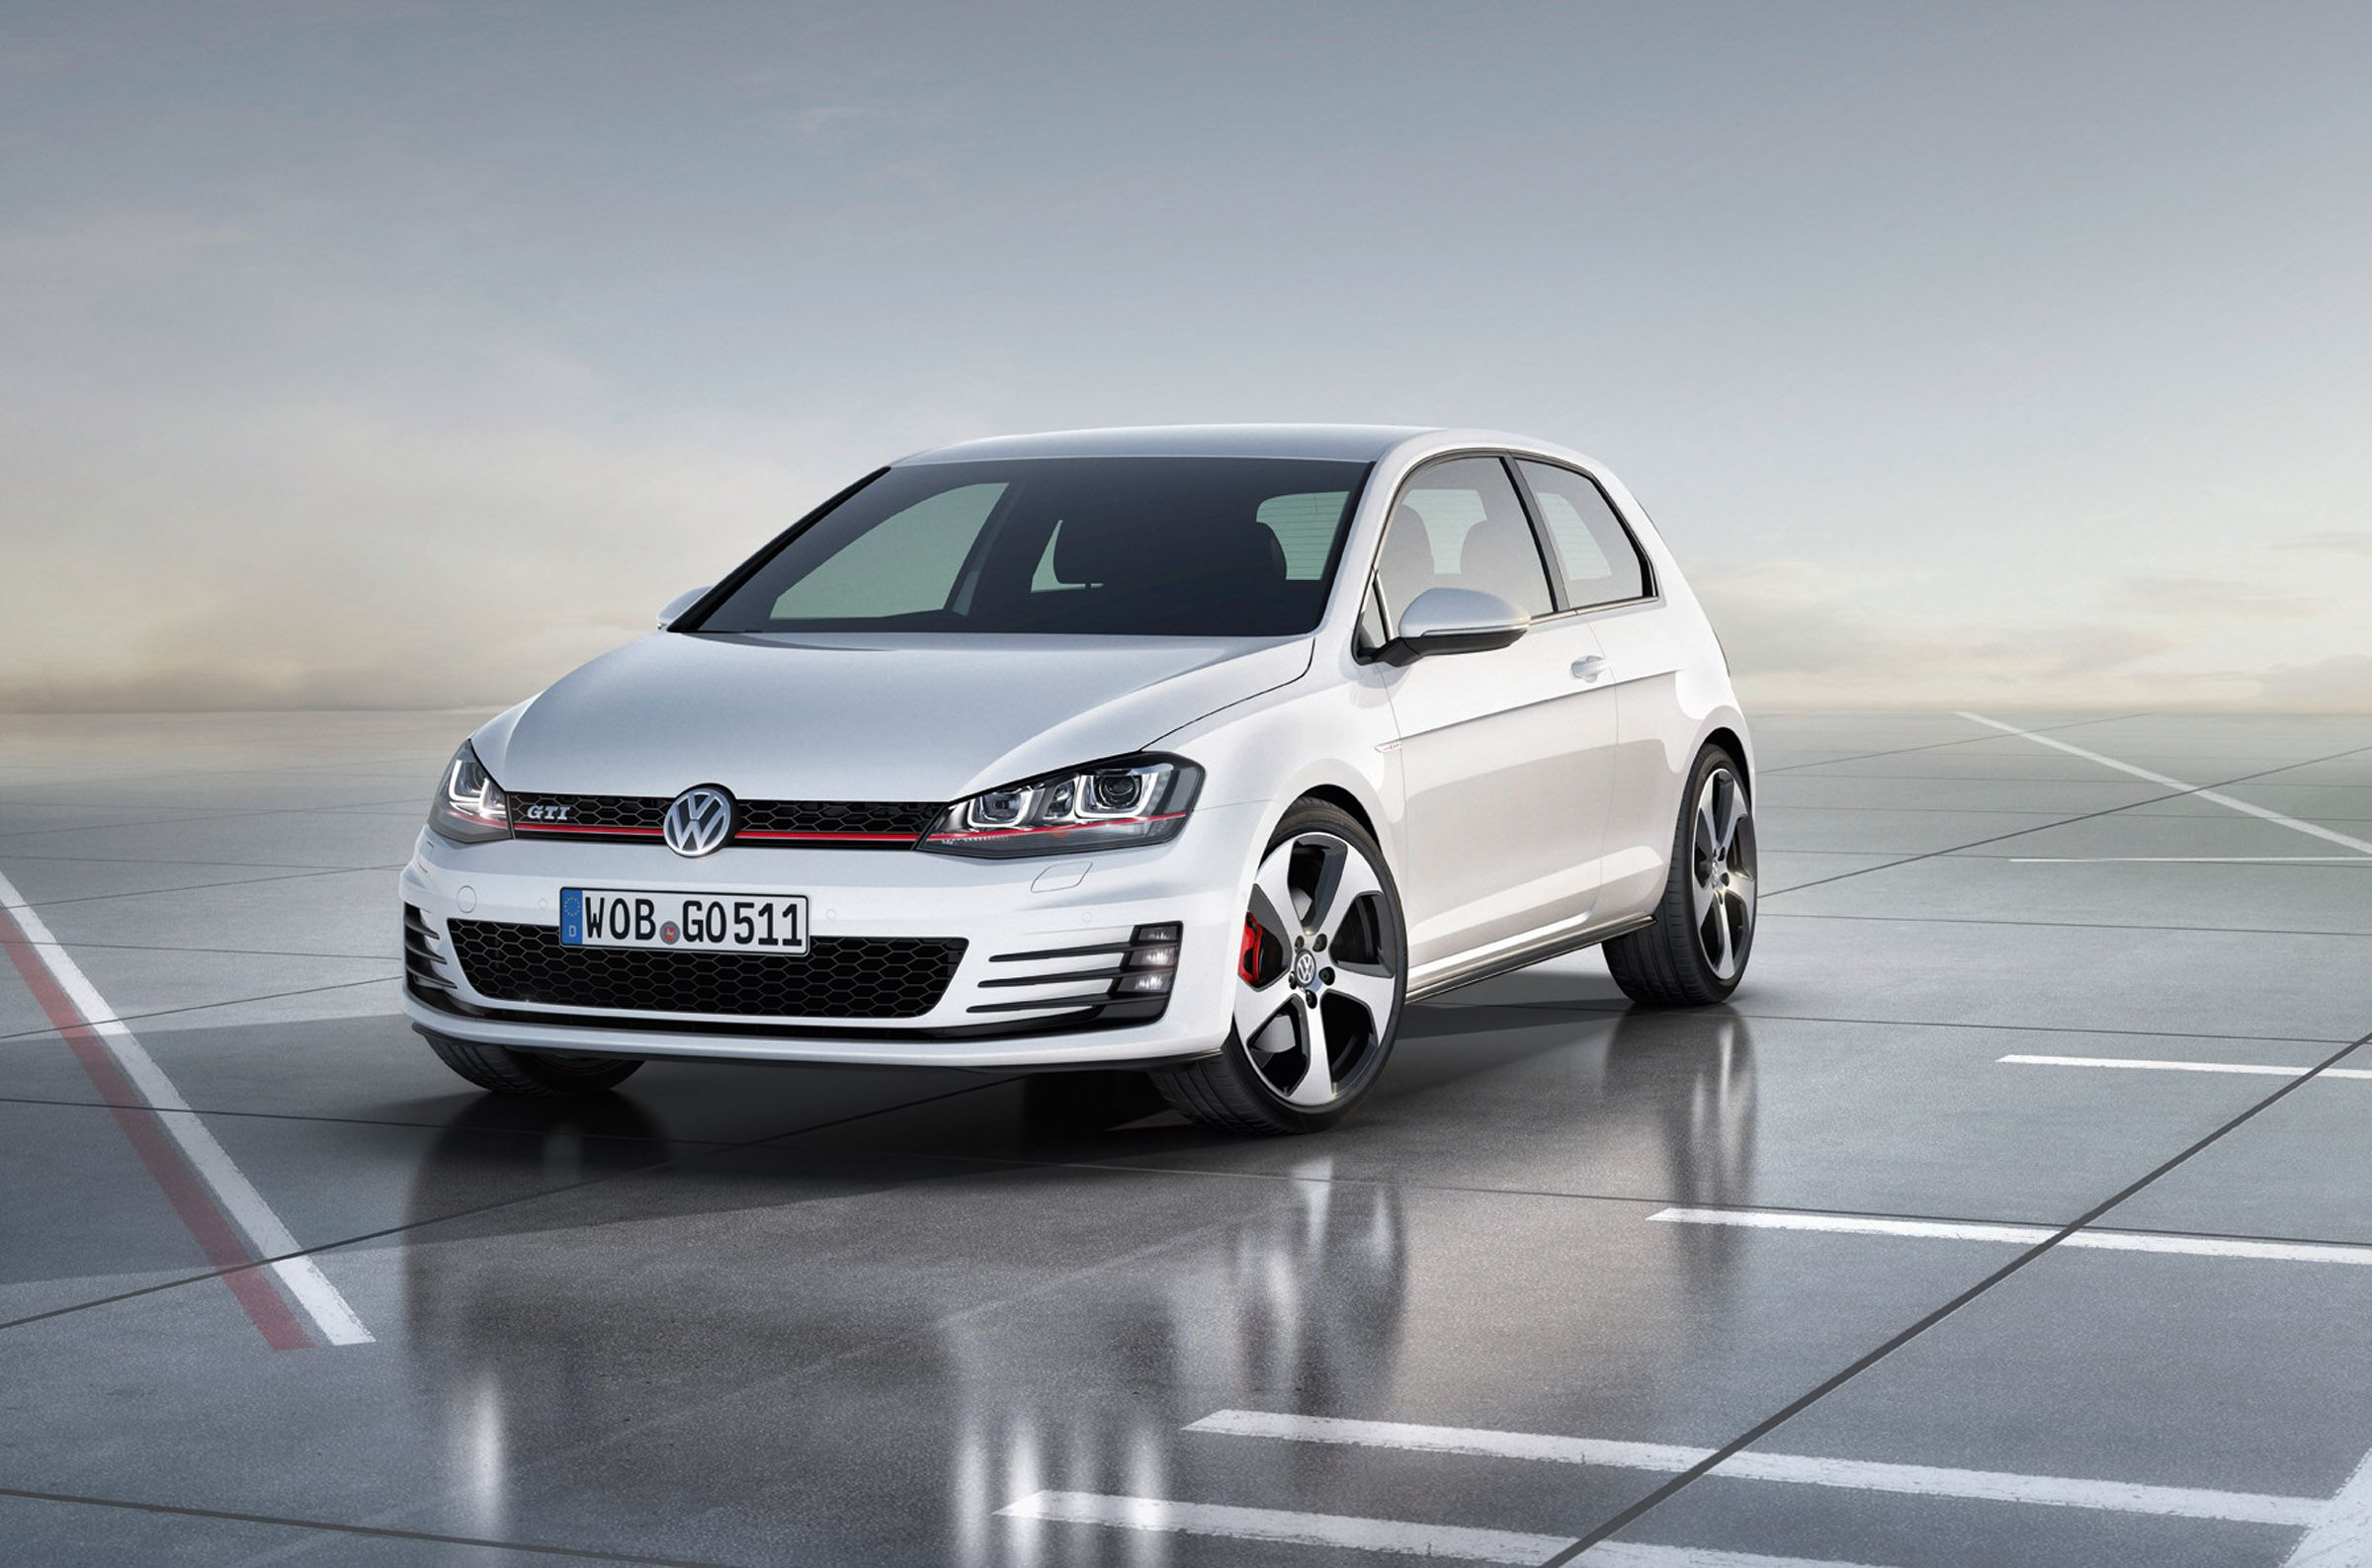 Volkswagen has released the official photo and unveiled the specification detail of the new 2012 volkswagen golf gti concept at 2012 paris auto show